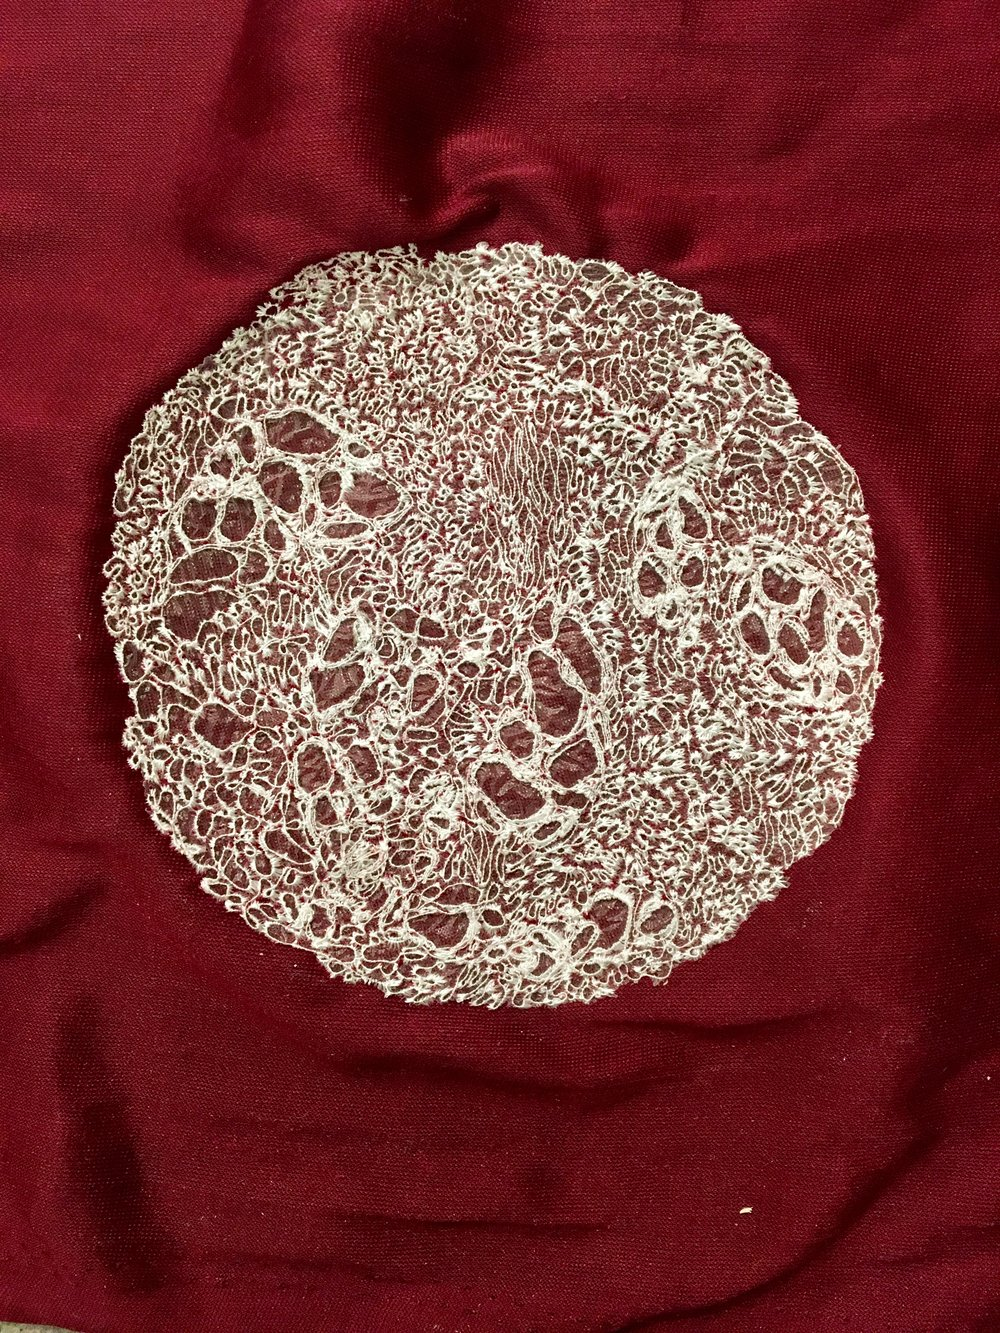 Cancer Cells Machine Embroidery on Velvet (reverse side), 2018